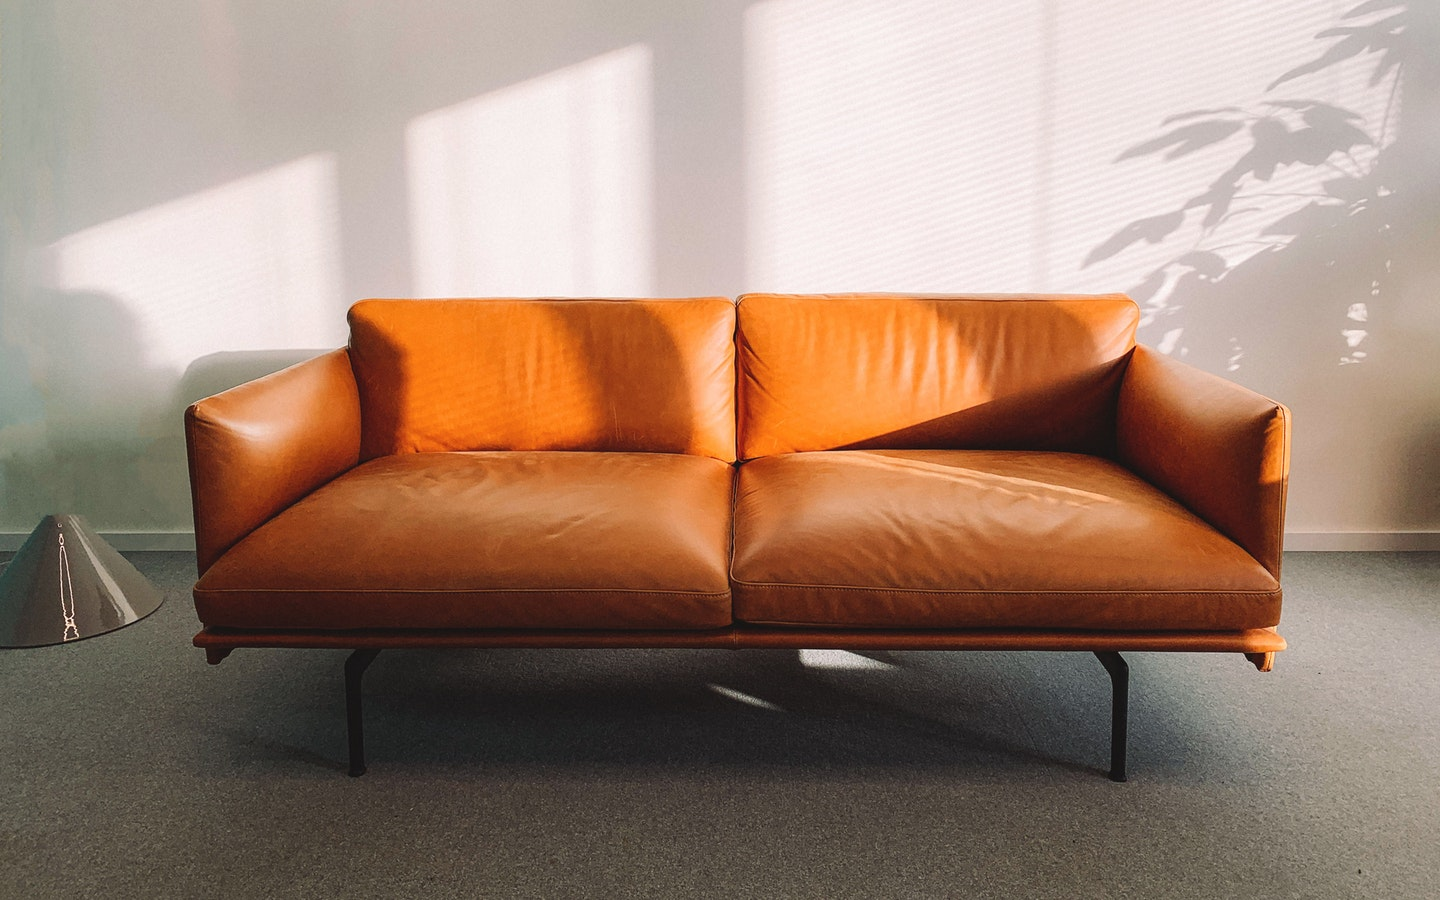 Improve your productivity by placing ergonomic furniture in your home